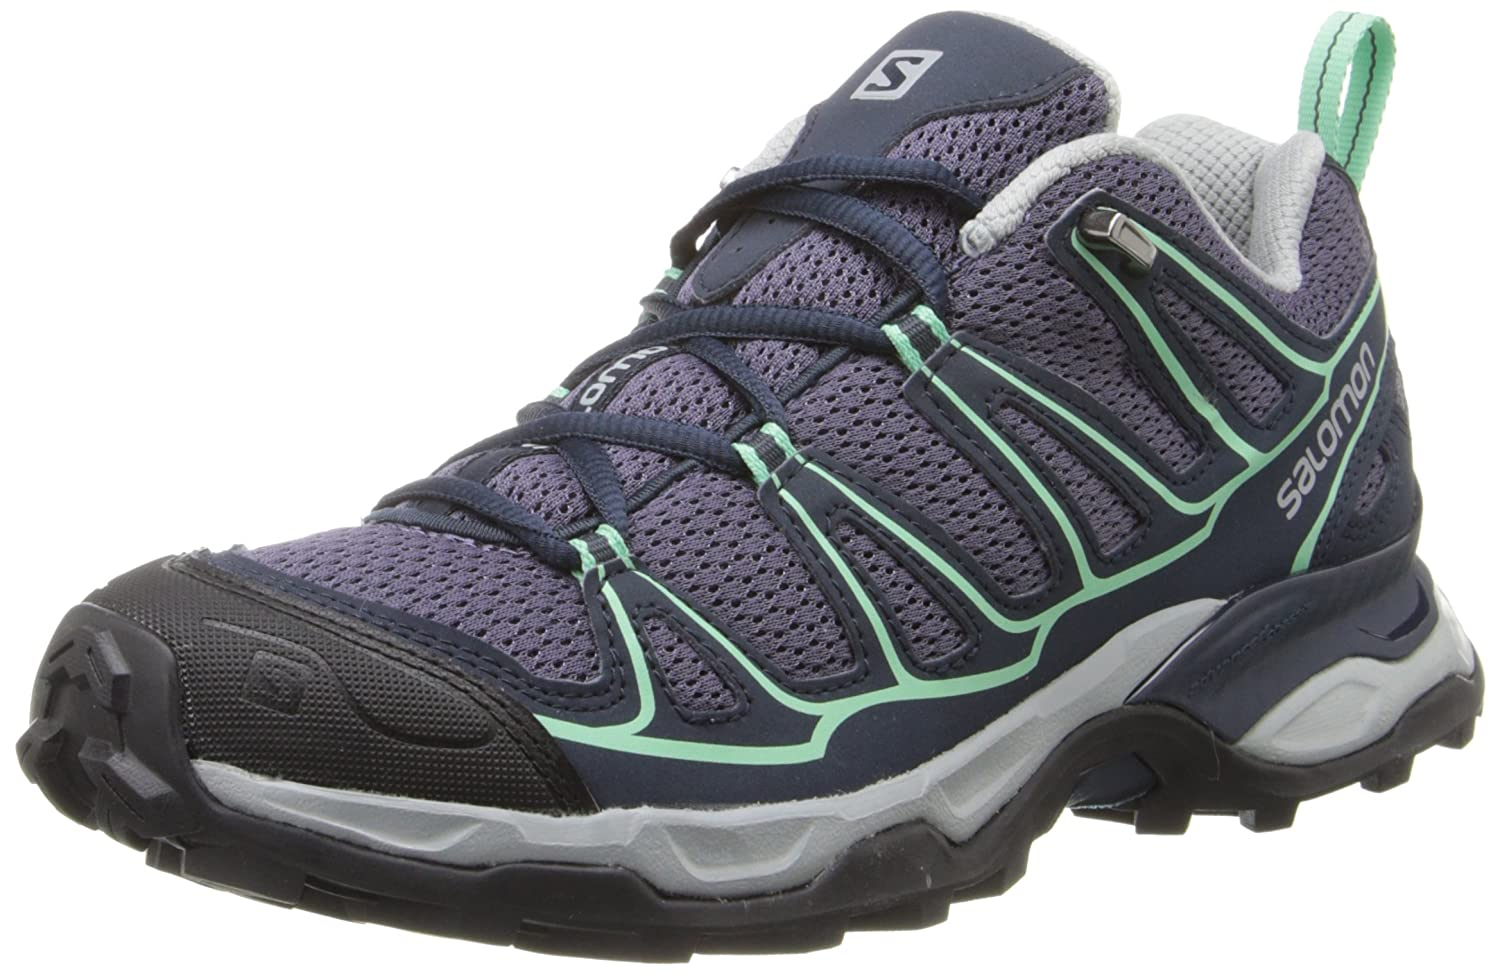 Salomon Women's X Ultra Prime Hiking Shoe X Ultra Prime-W